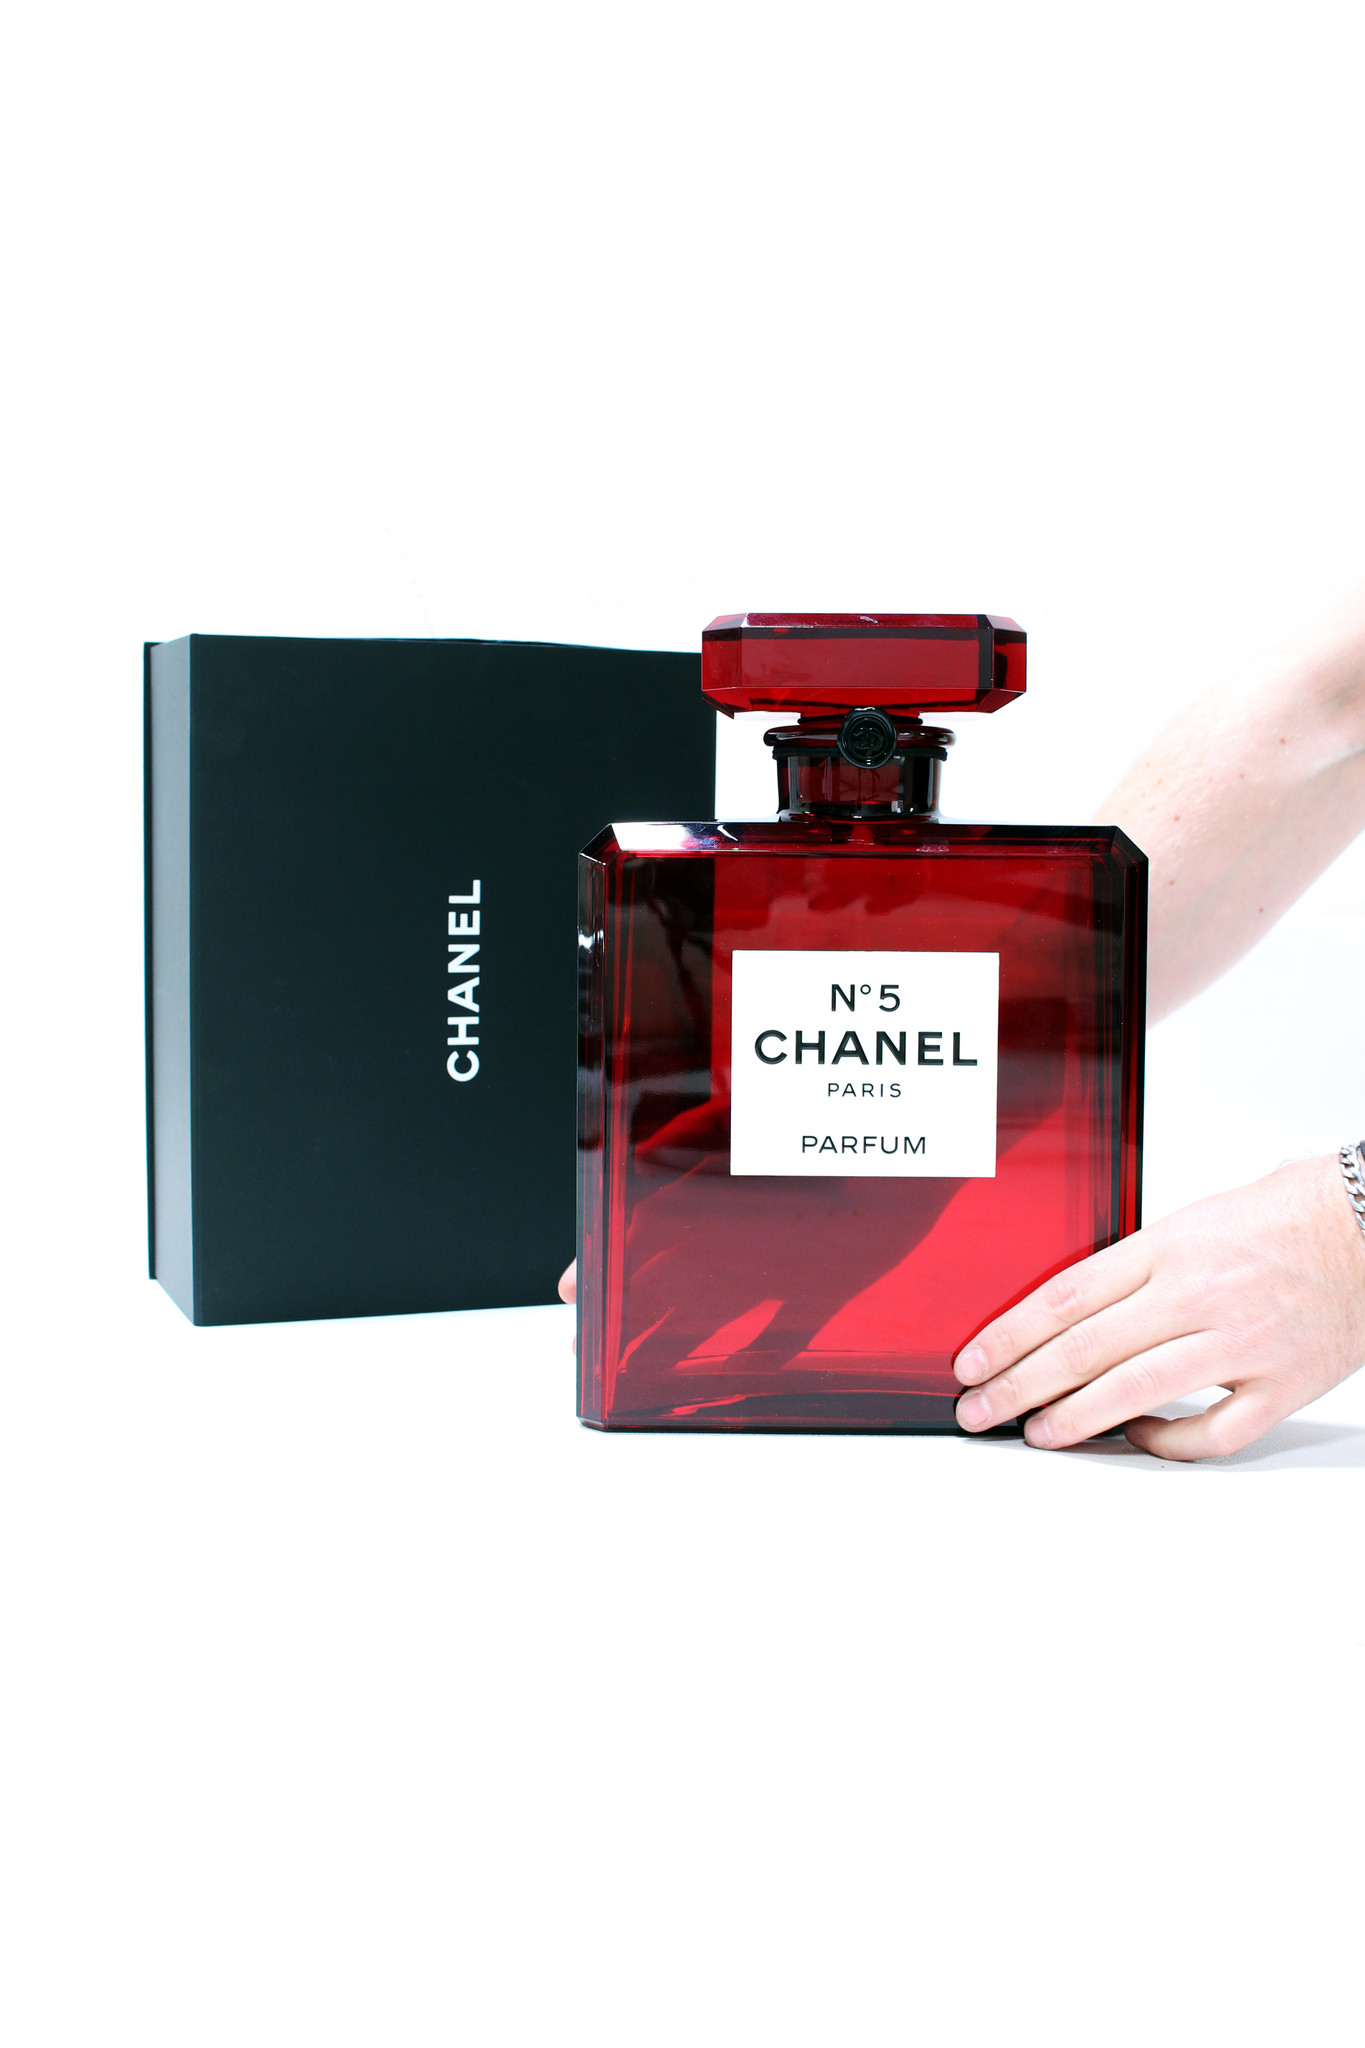 XXL Chanel Limited edition factice